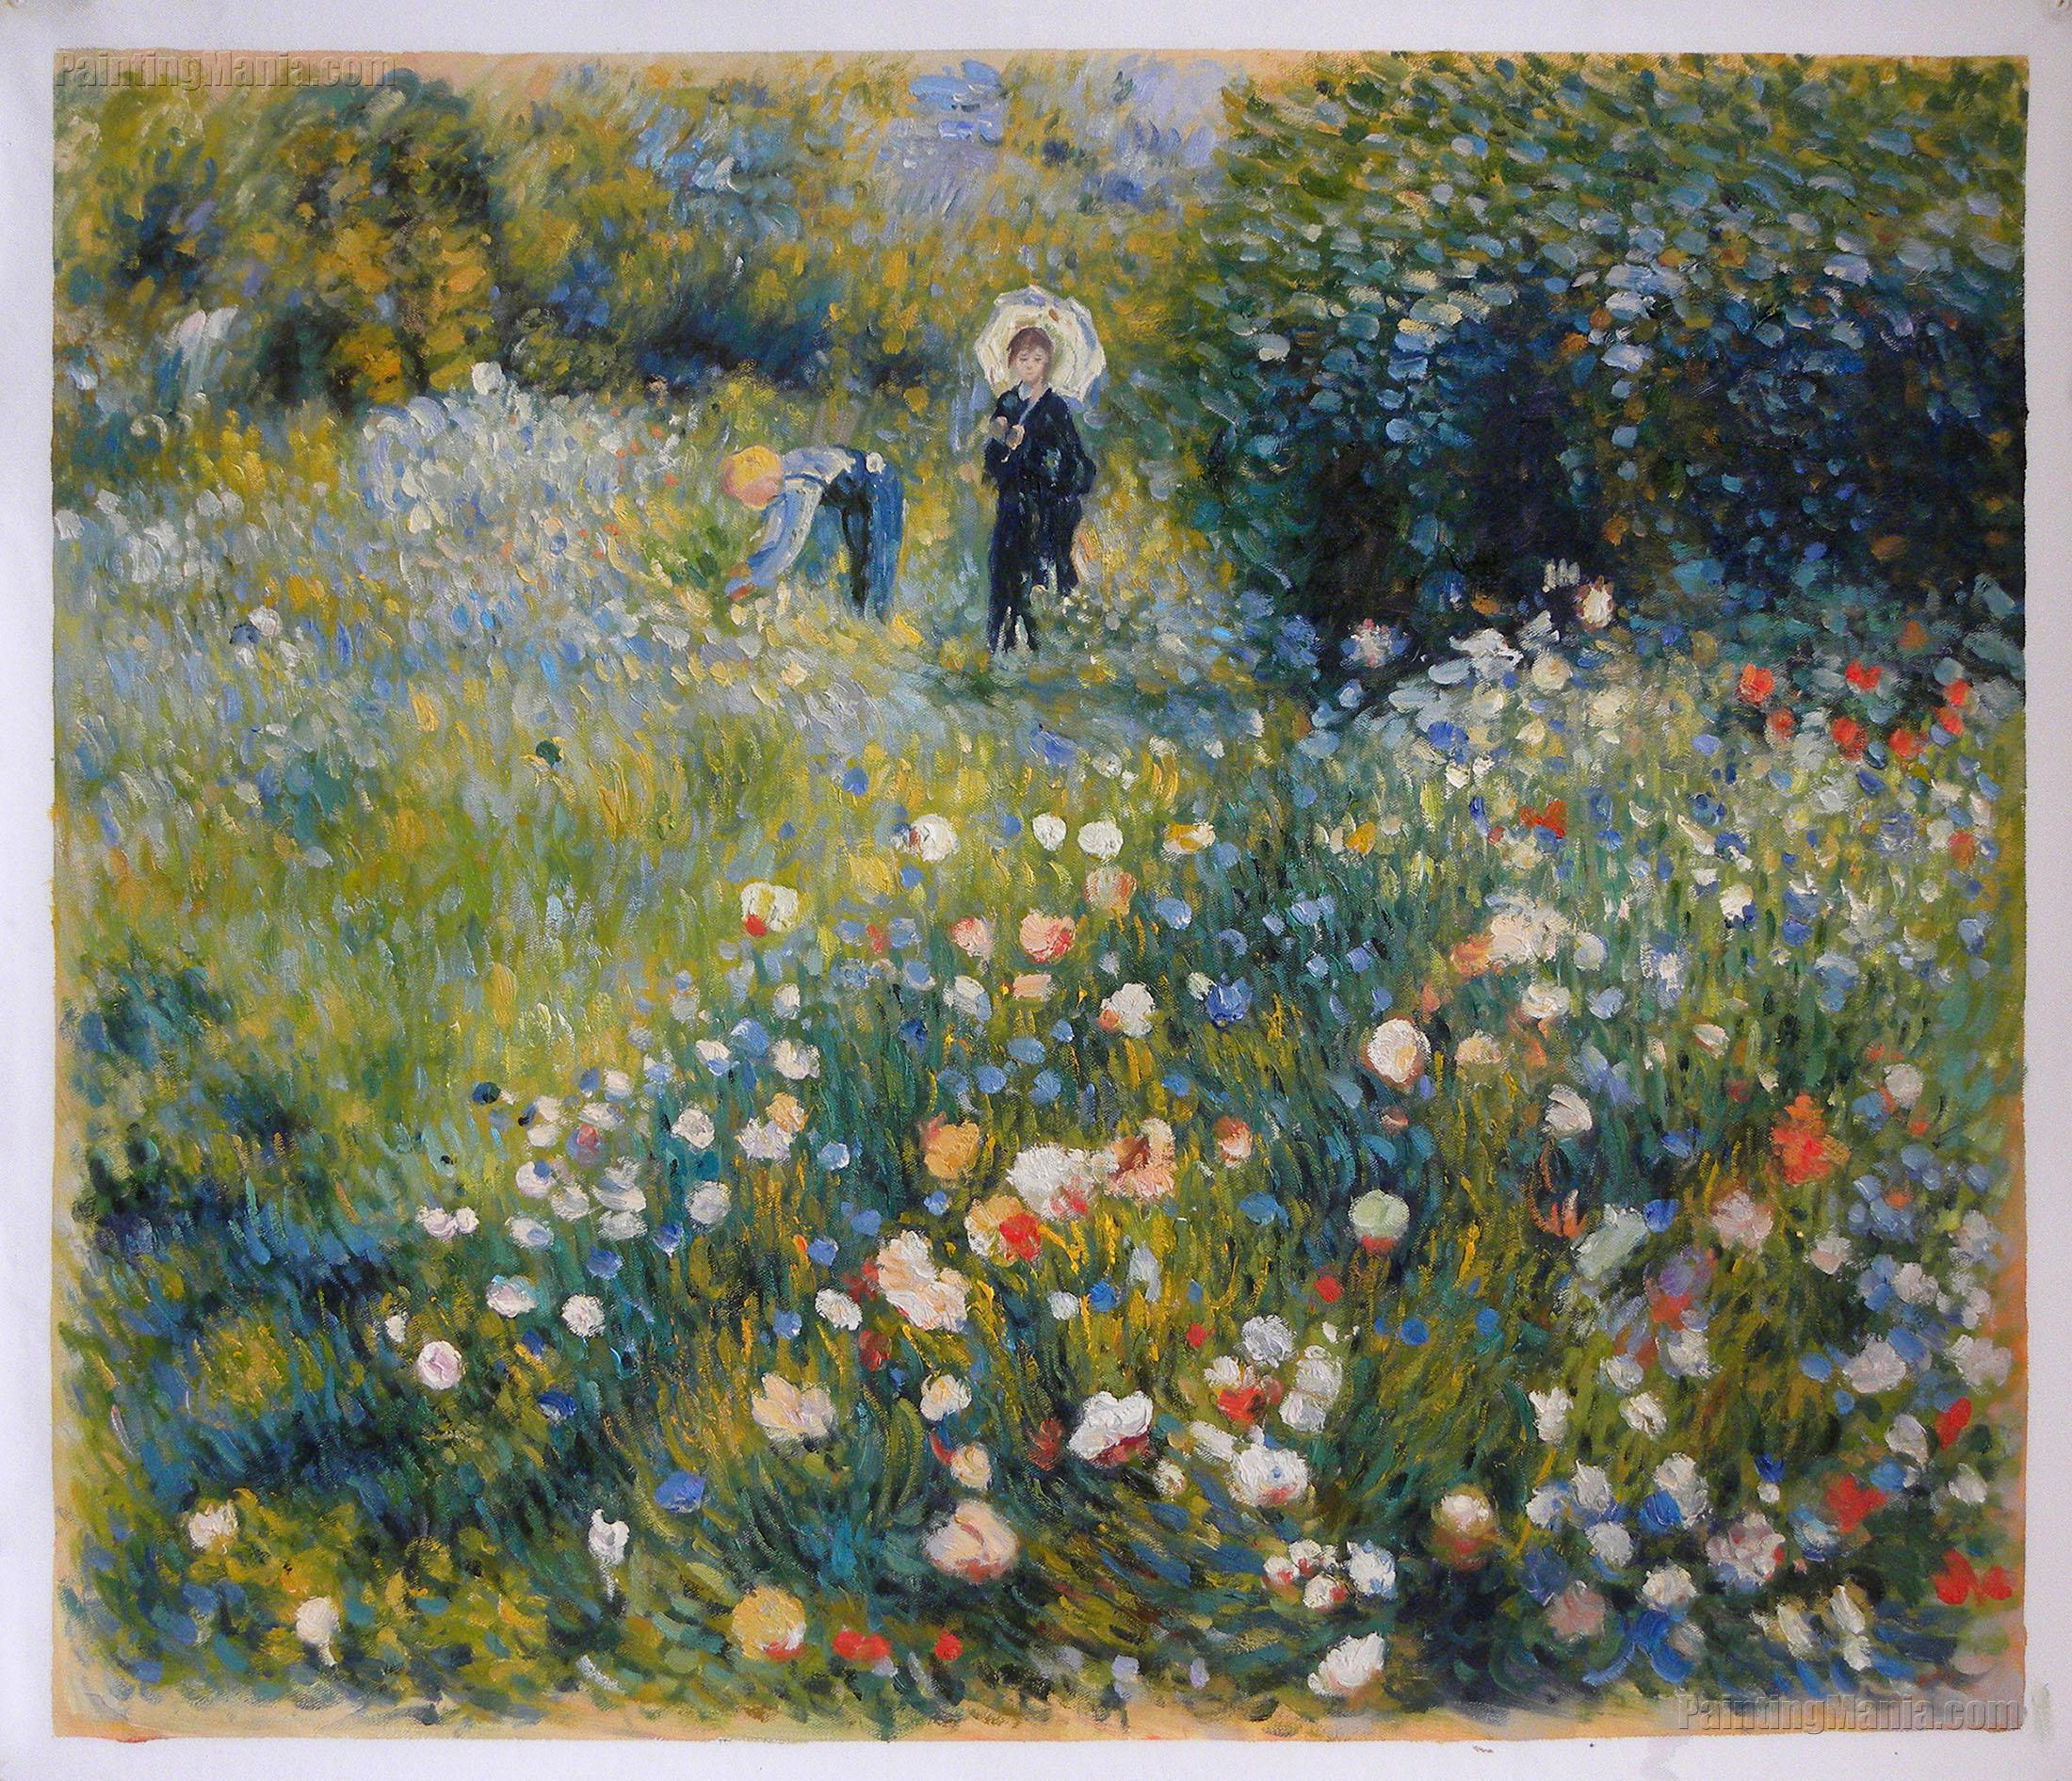 Summer Landscape (Woman with a Parasol in a Garden)